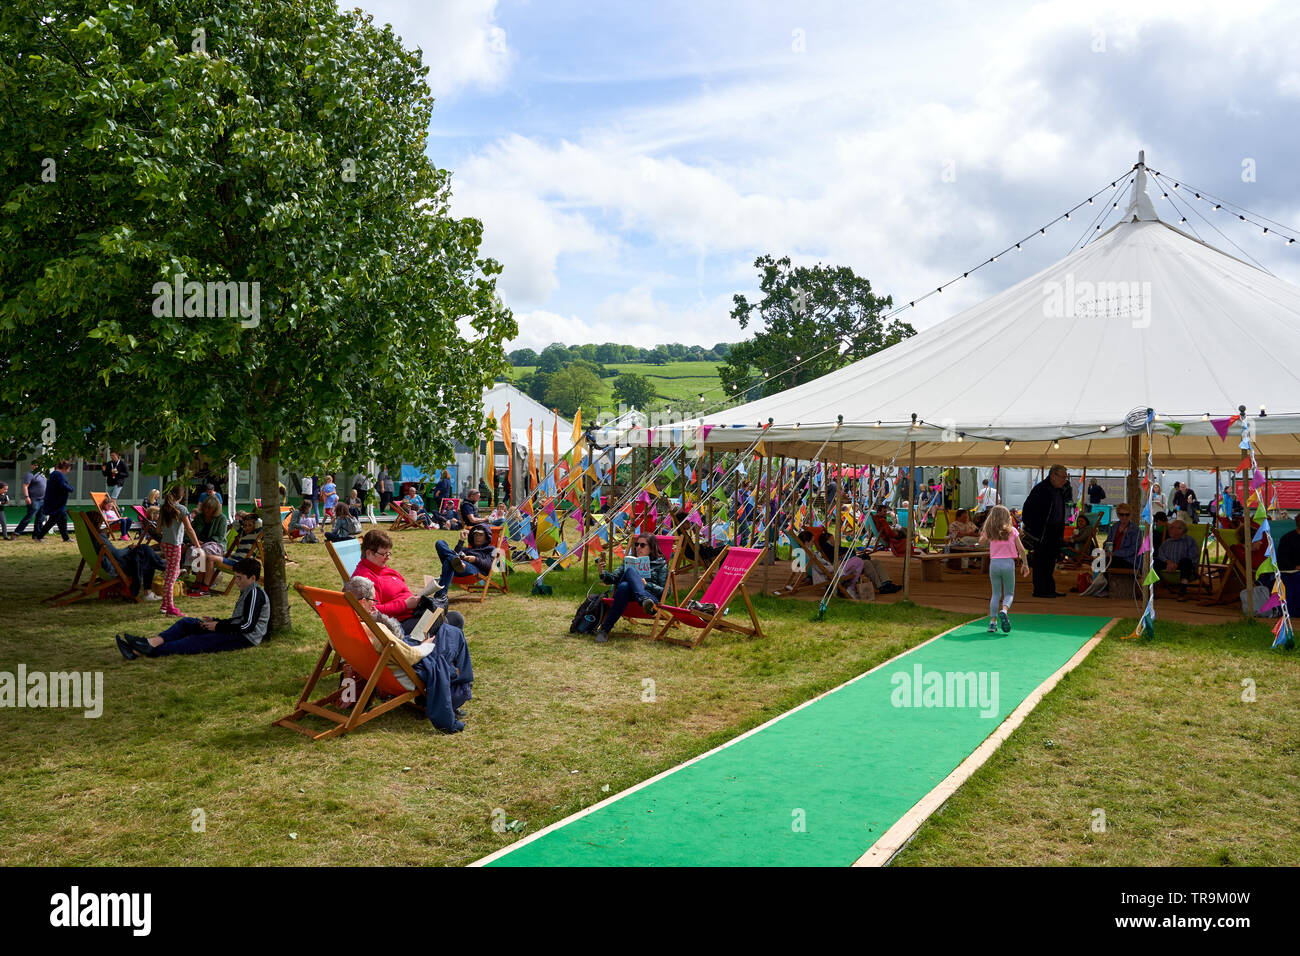 The Hay Festival, Hay-on-Wye, Wales, 2019 - Stock Image